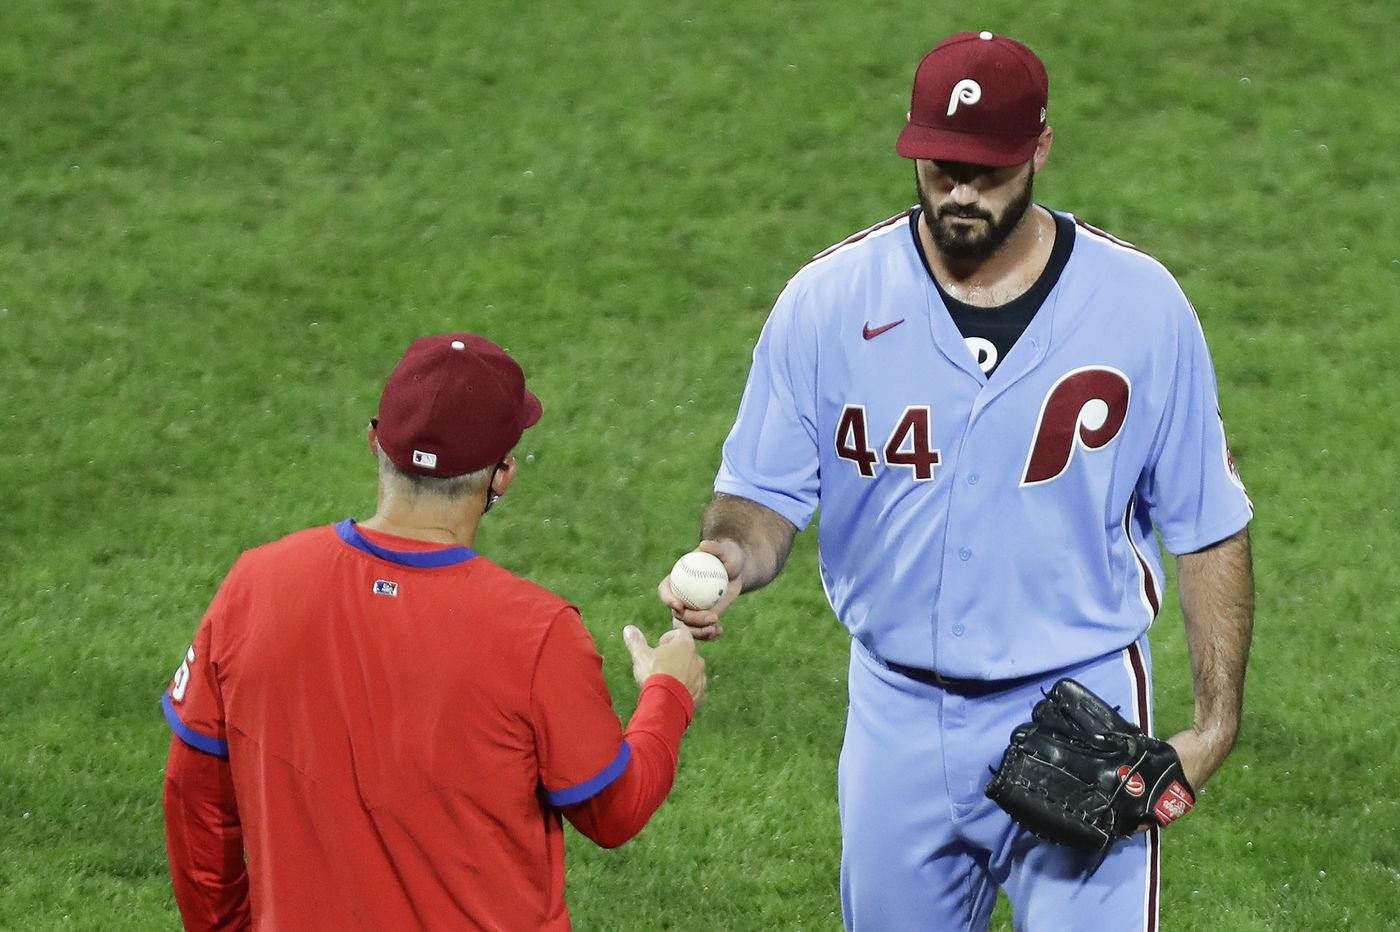 Bryce Harper homers twice, but bullpen blows it again as Phillies lose to Mets, 10-6, and fall below .500